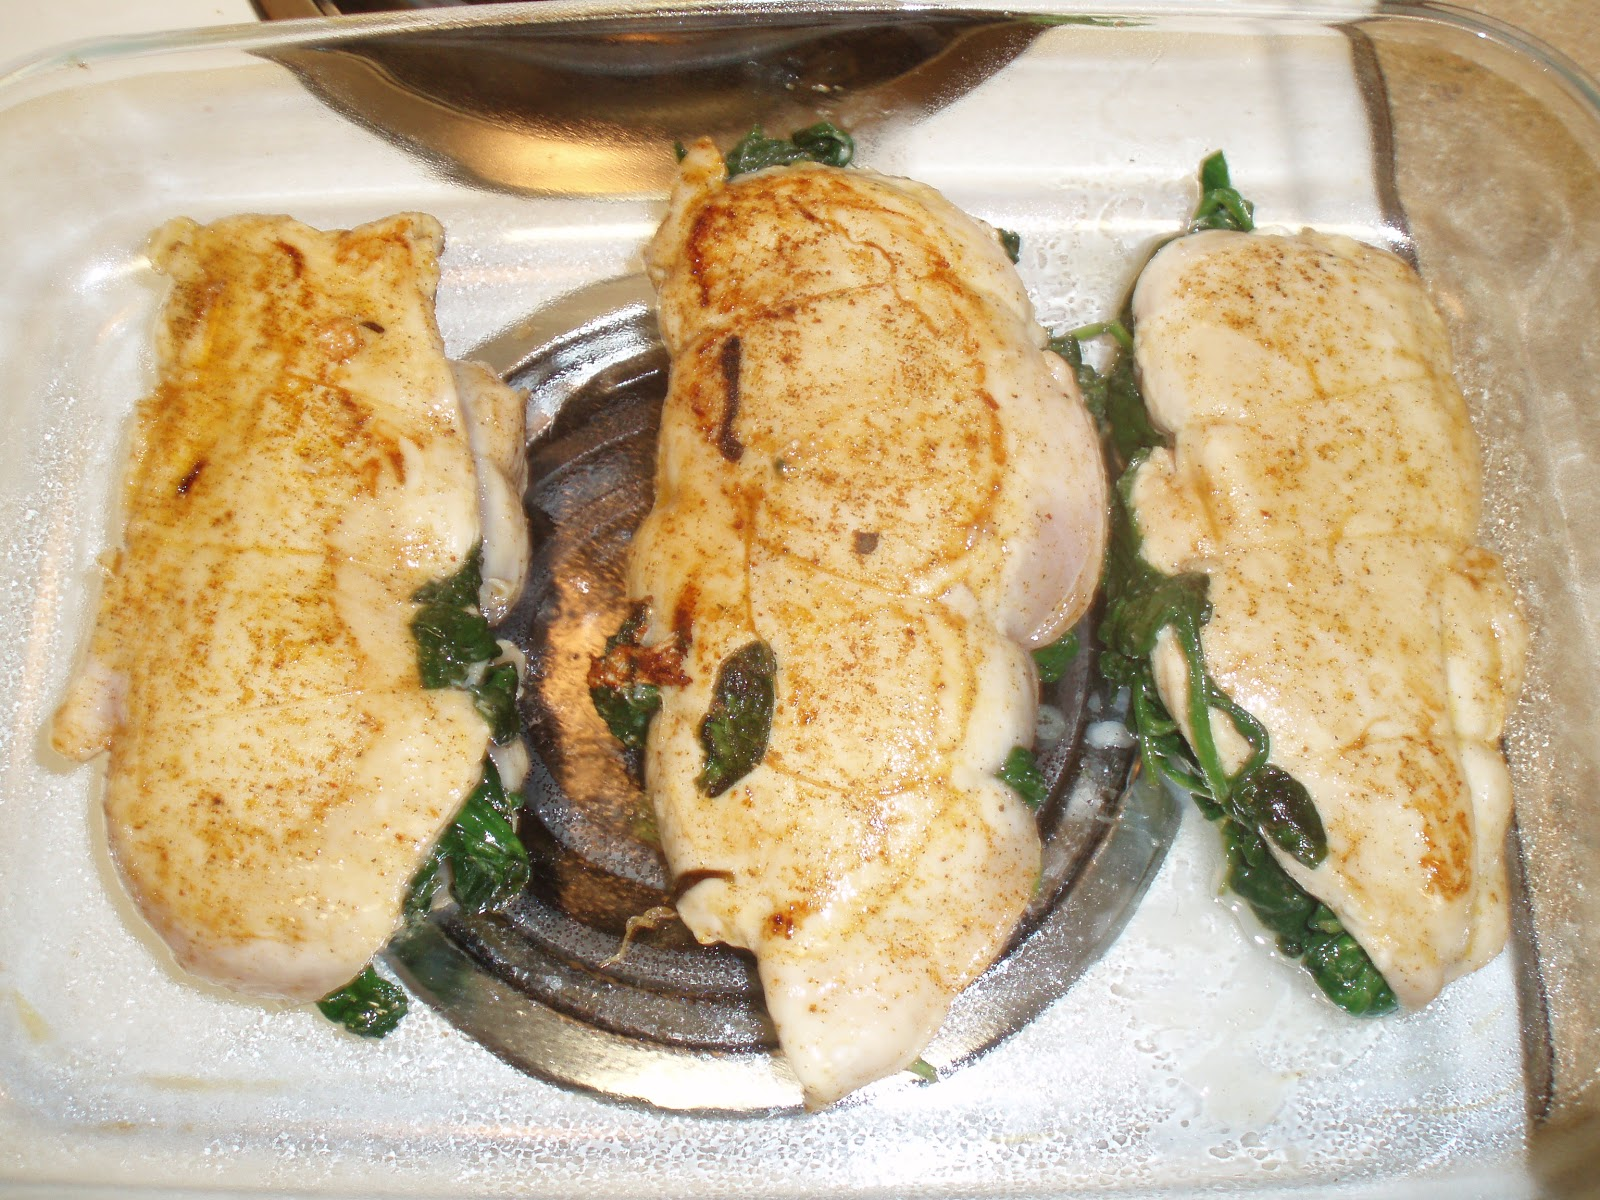 ... - 20 minutes or until chicken is cooked through and cheese is melted